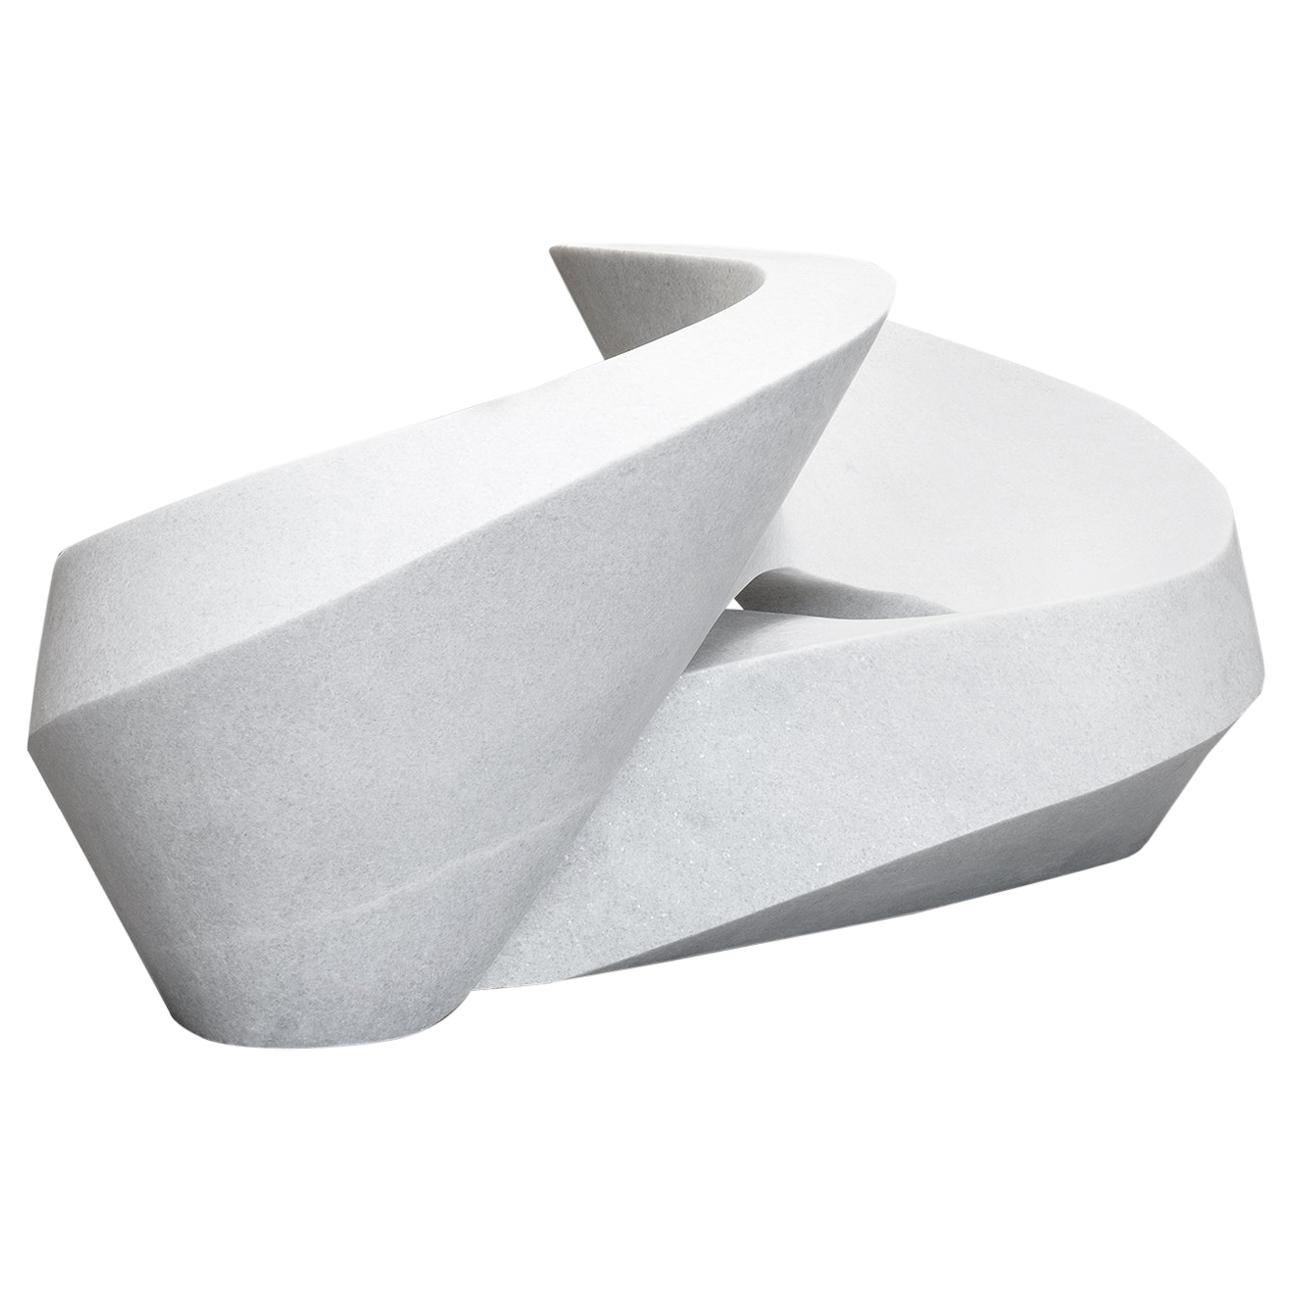 Pedro Reyes, White Marble Infinity Chair, 2018 Contemporary Mexican Design